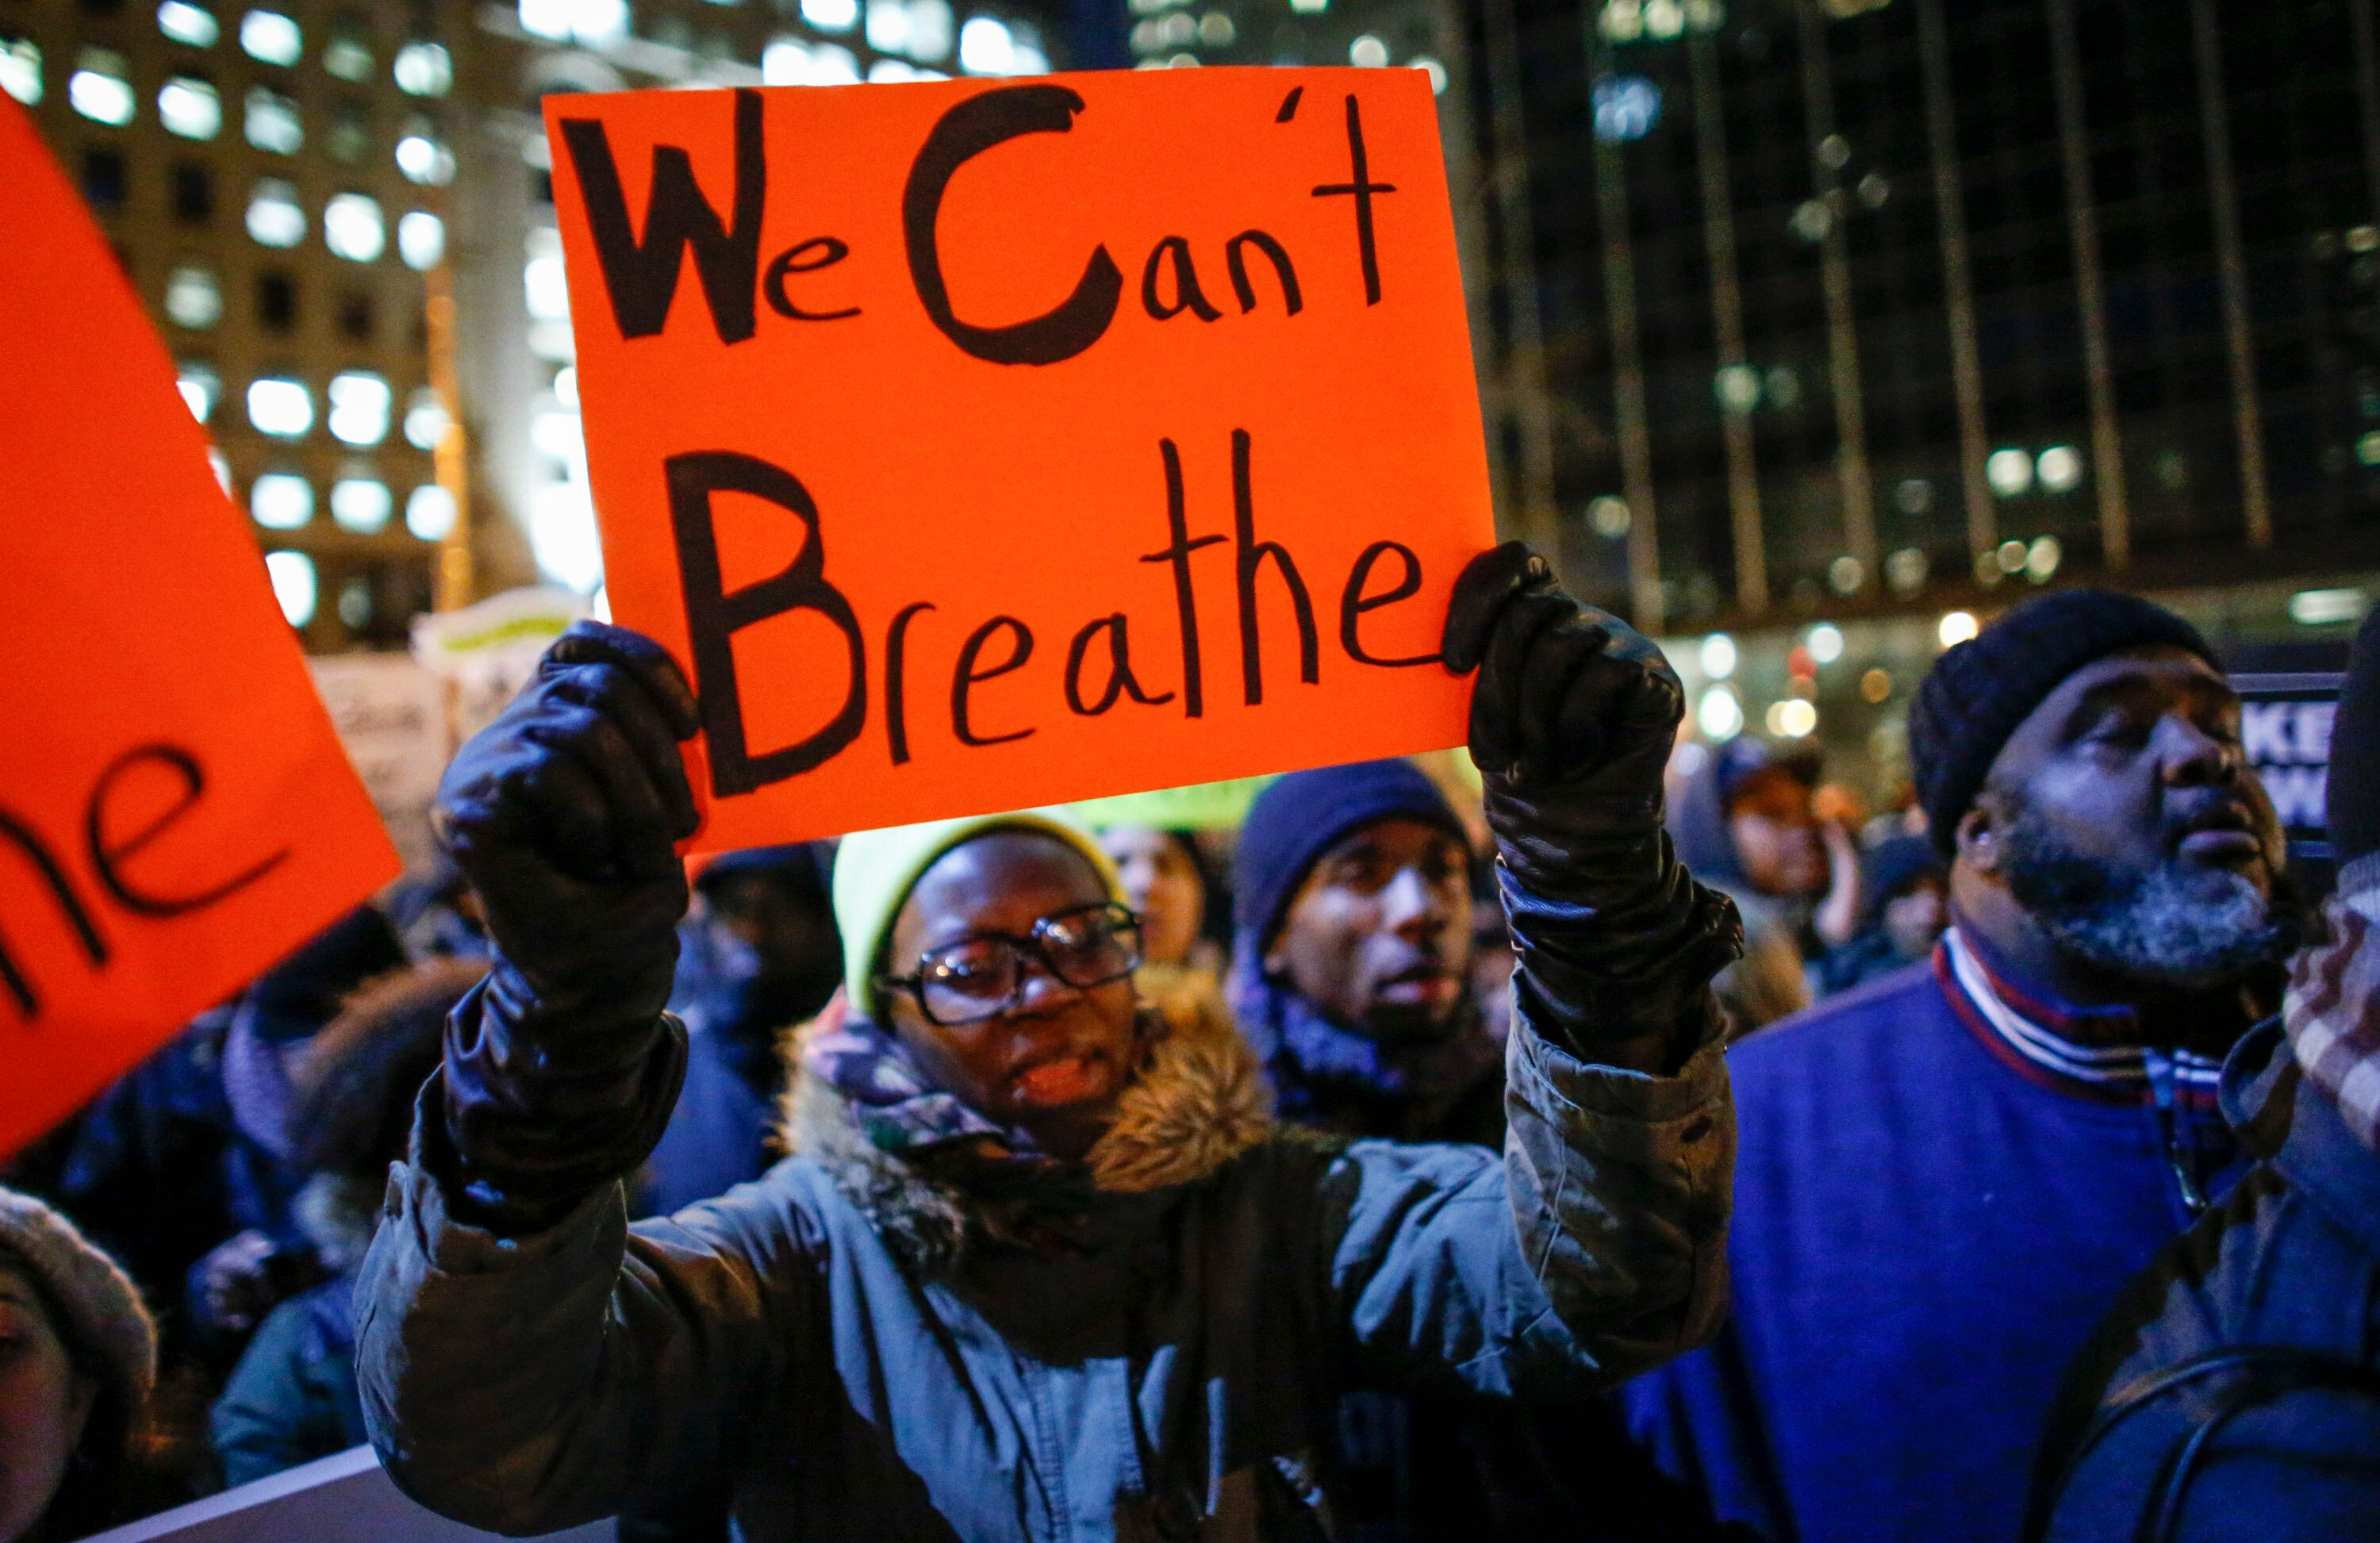 NEW YORK, NY - DECEMBER 4:  A woman holds a sign as she takes part in a protest following yesterday's decision by a Staten Island grand jury not to indict a police officer who used a chokehold in the death of Eric Garner in July, in Foley Square on December 4, 2014  in New York City.  The grand jury declined to indict New York City Police Officer Daniel Pantaleo in Garner's death.  (Photo by Kena Betancur/Getty Images)